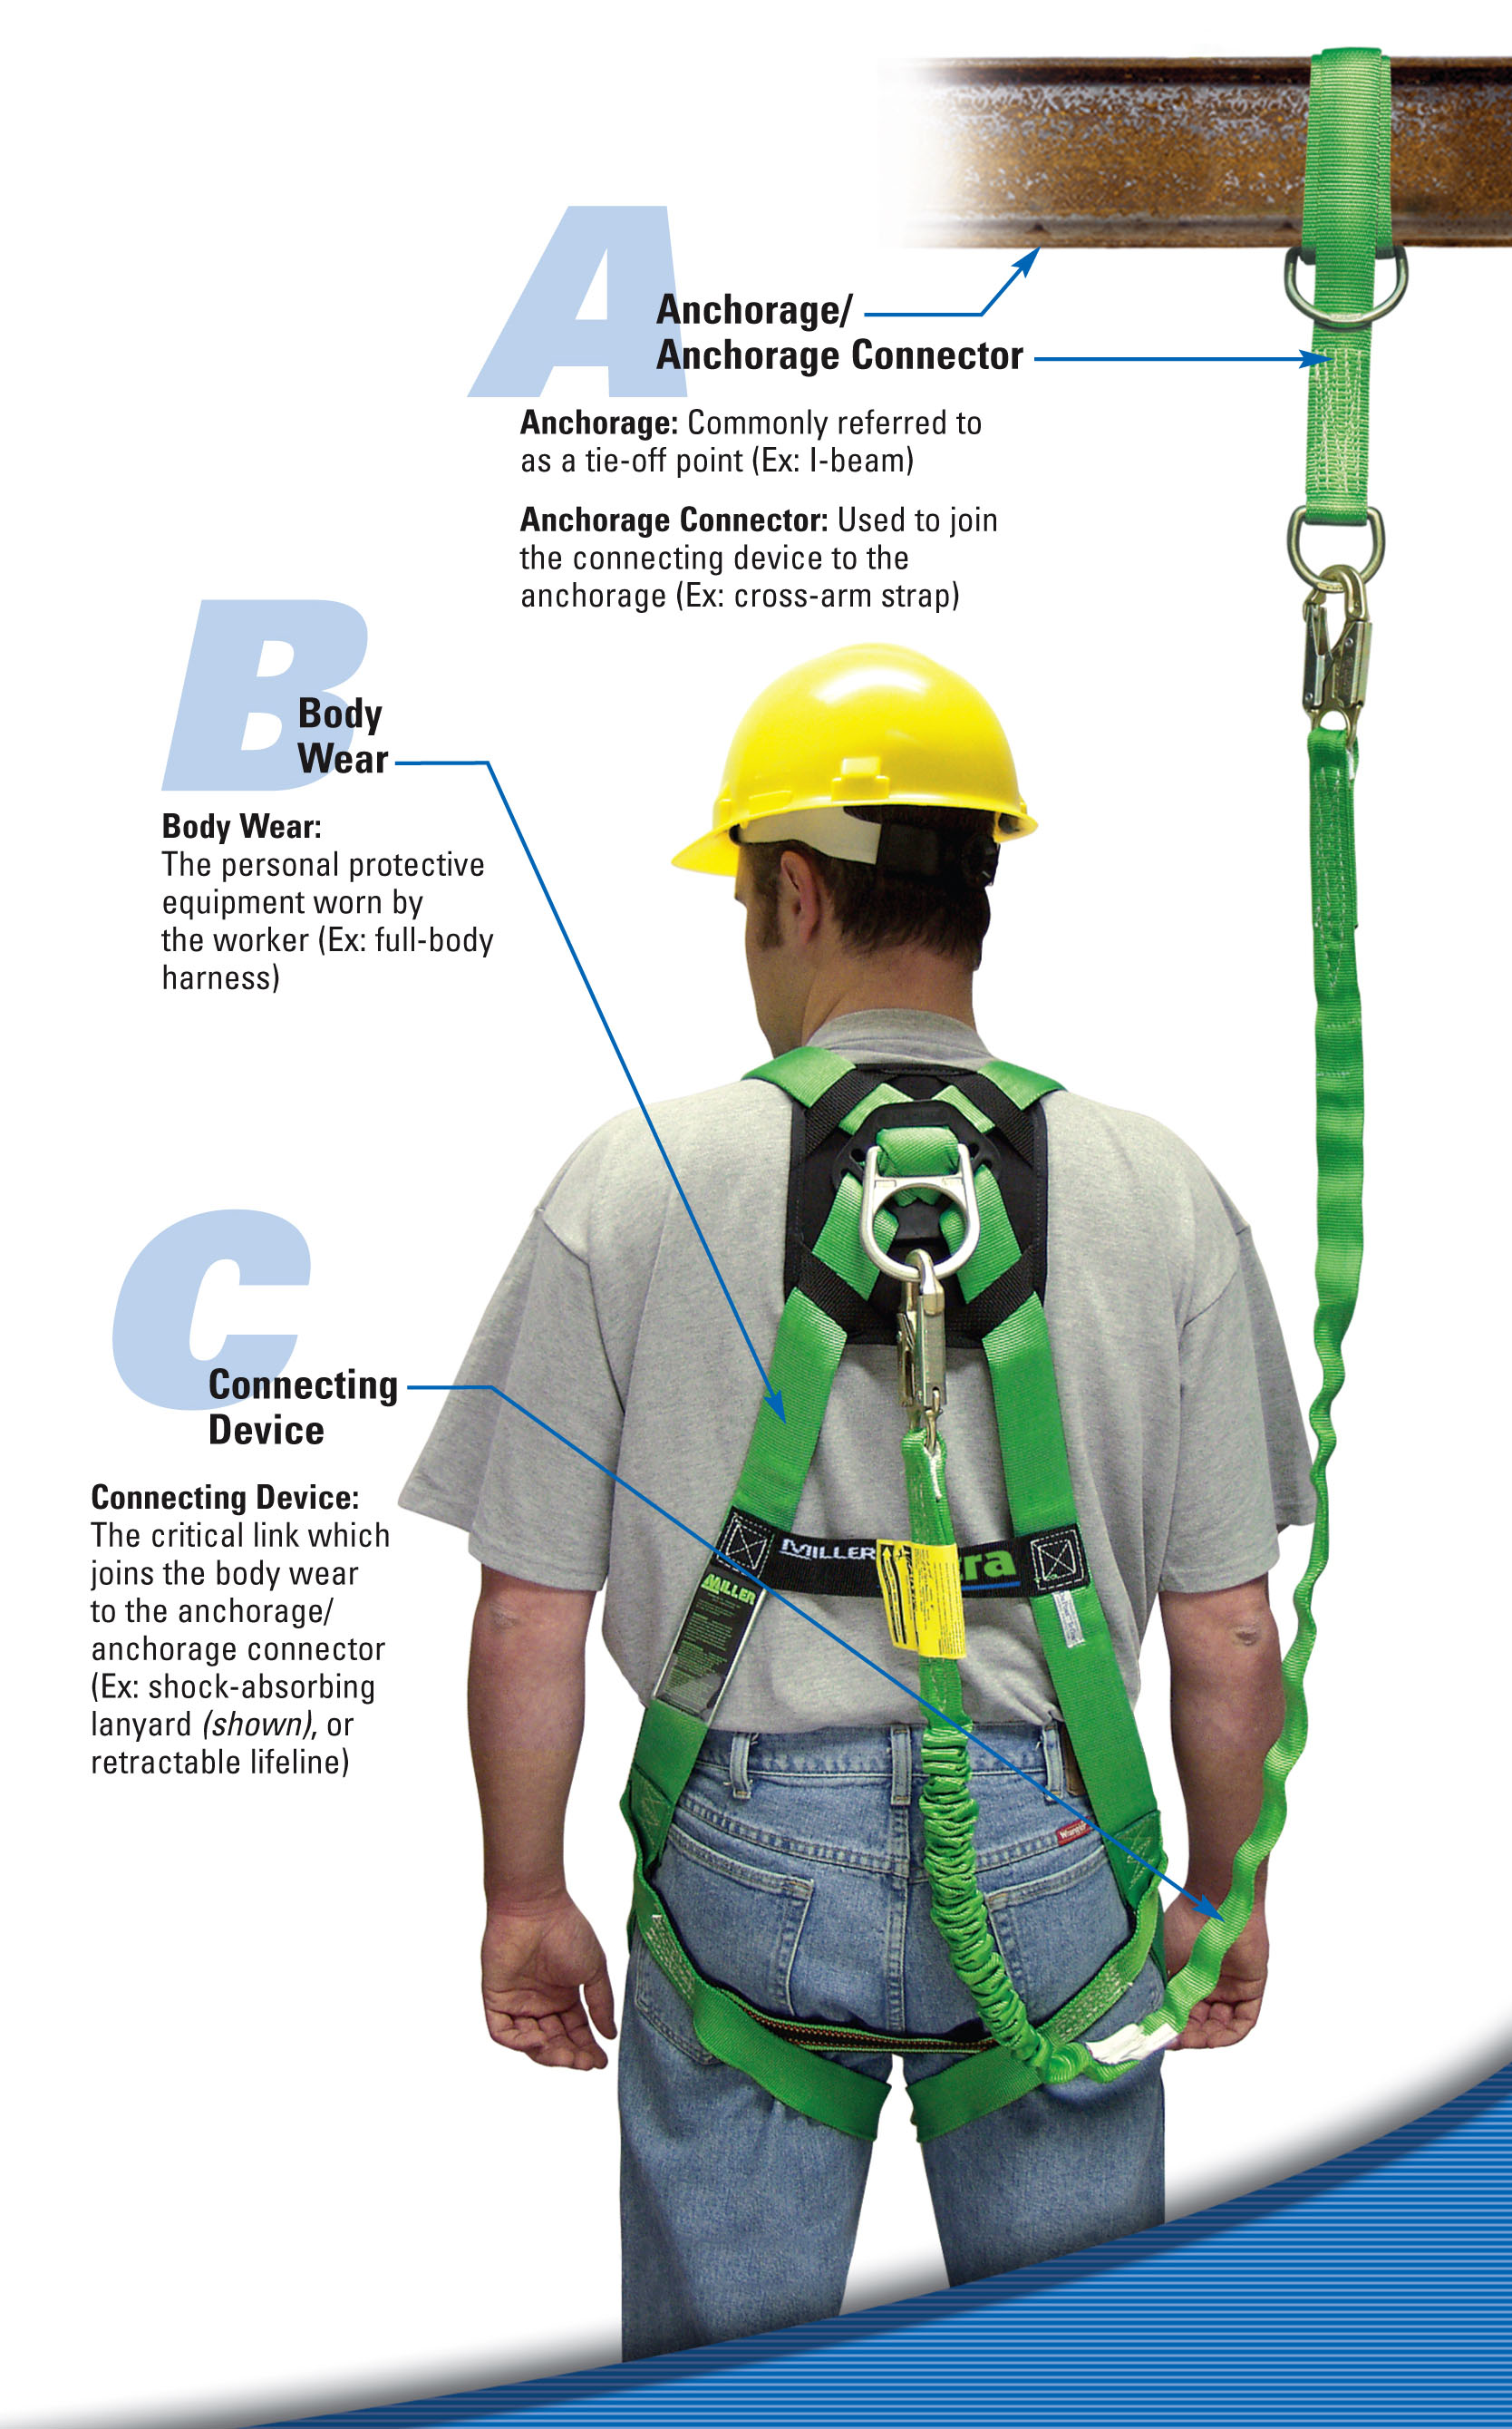 Highlighting the ABCs of Fall Protection: Anchorage Connector, Body Wear, and Connecting Device